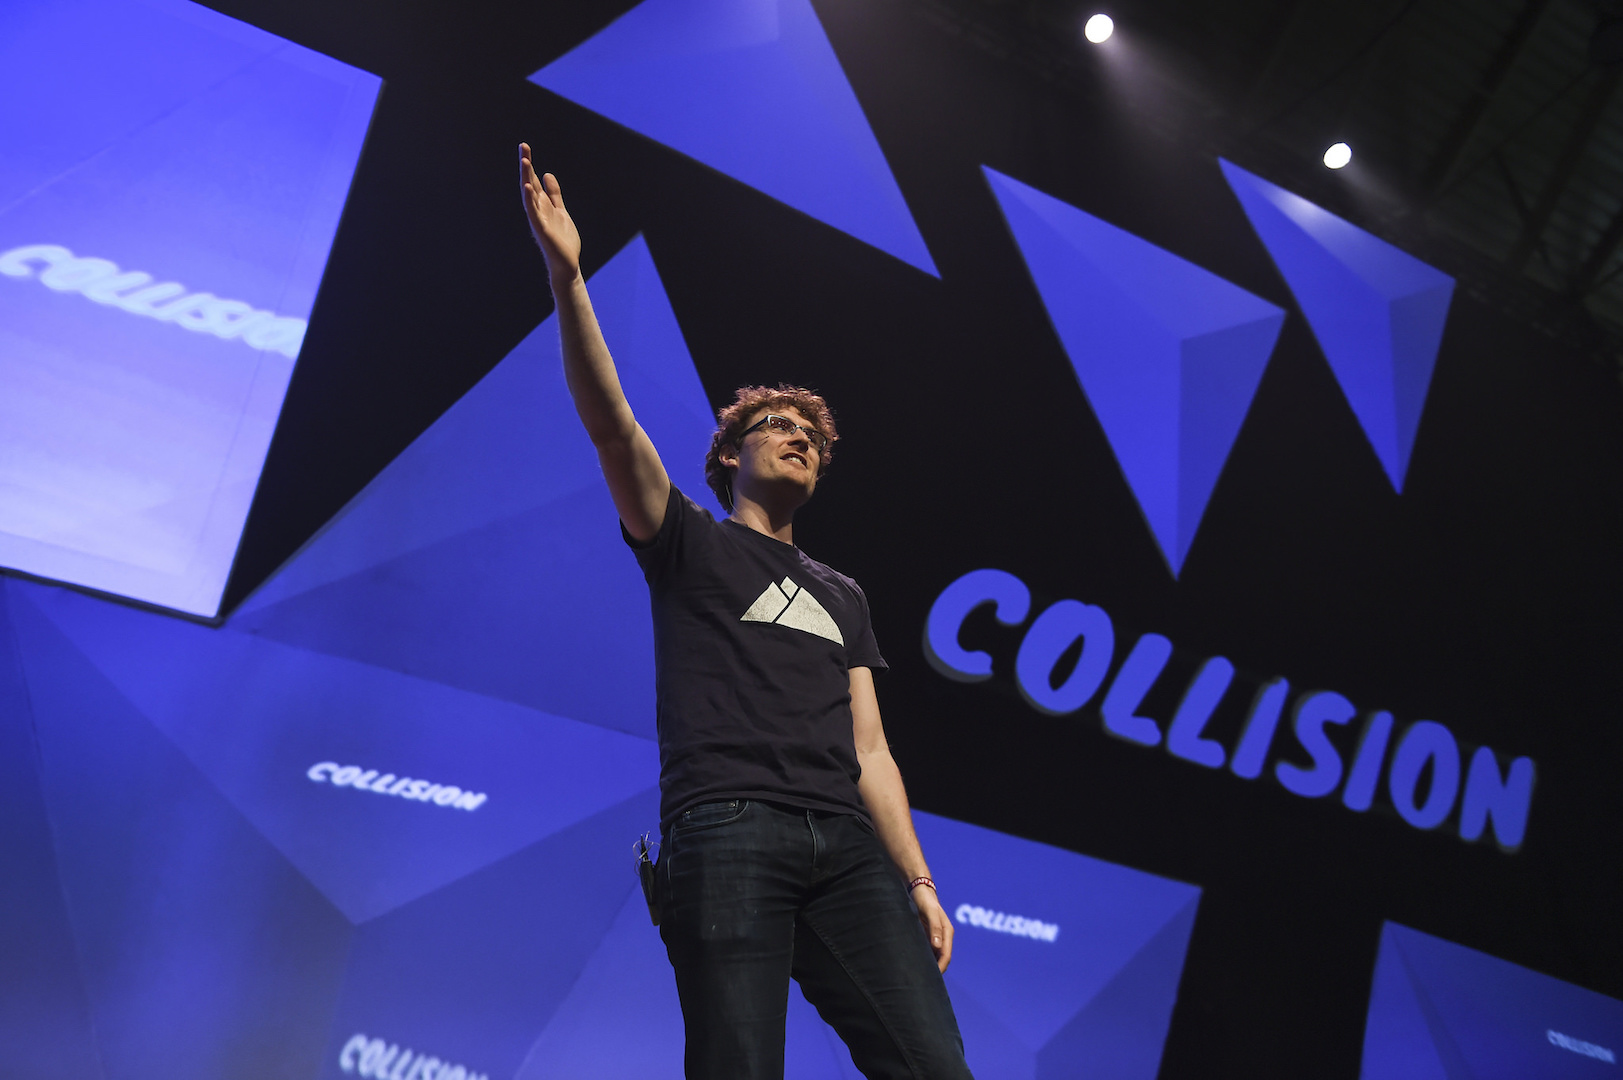 Photo: Paddy Cosgrave CEO, Collision & Web Summit; Credit: Stephen McCarthy/Collision via Sportsfile